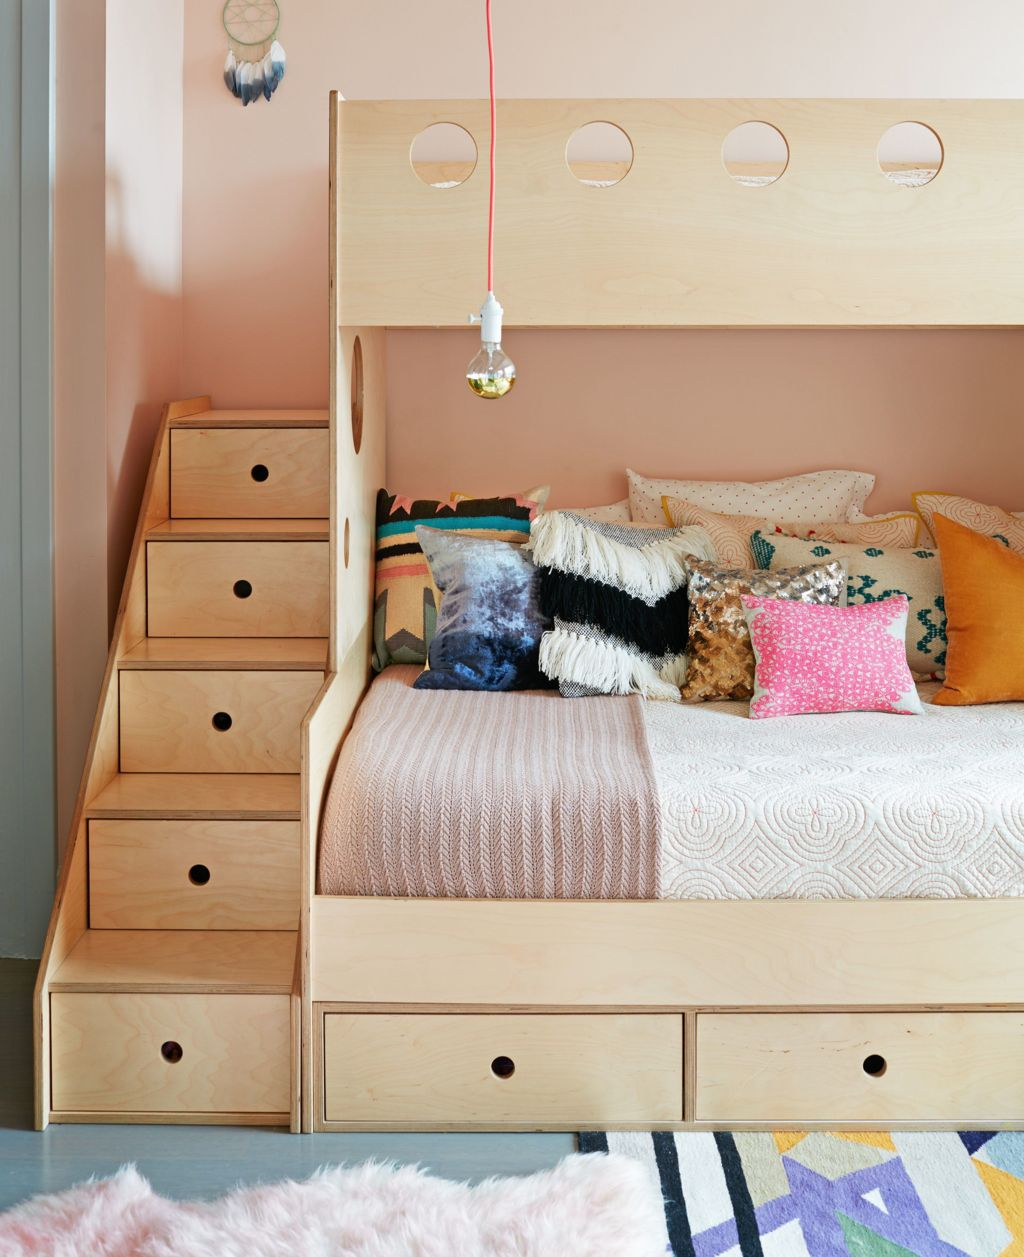 https://elonahome.com/wp-content/uploads/2019/01/Wooden-Storage-Bunk-Bed-Frame-Designs-That-Effective-to-give-ashared-space-some-efficient-organizations-Part-14.jpg